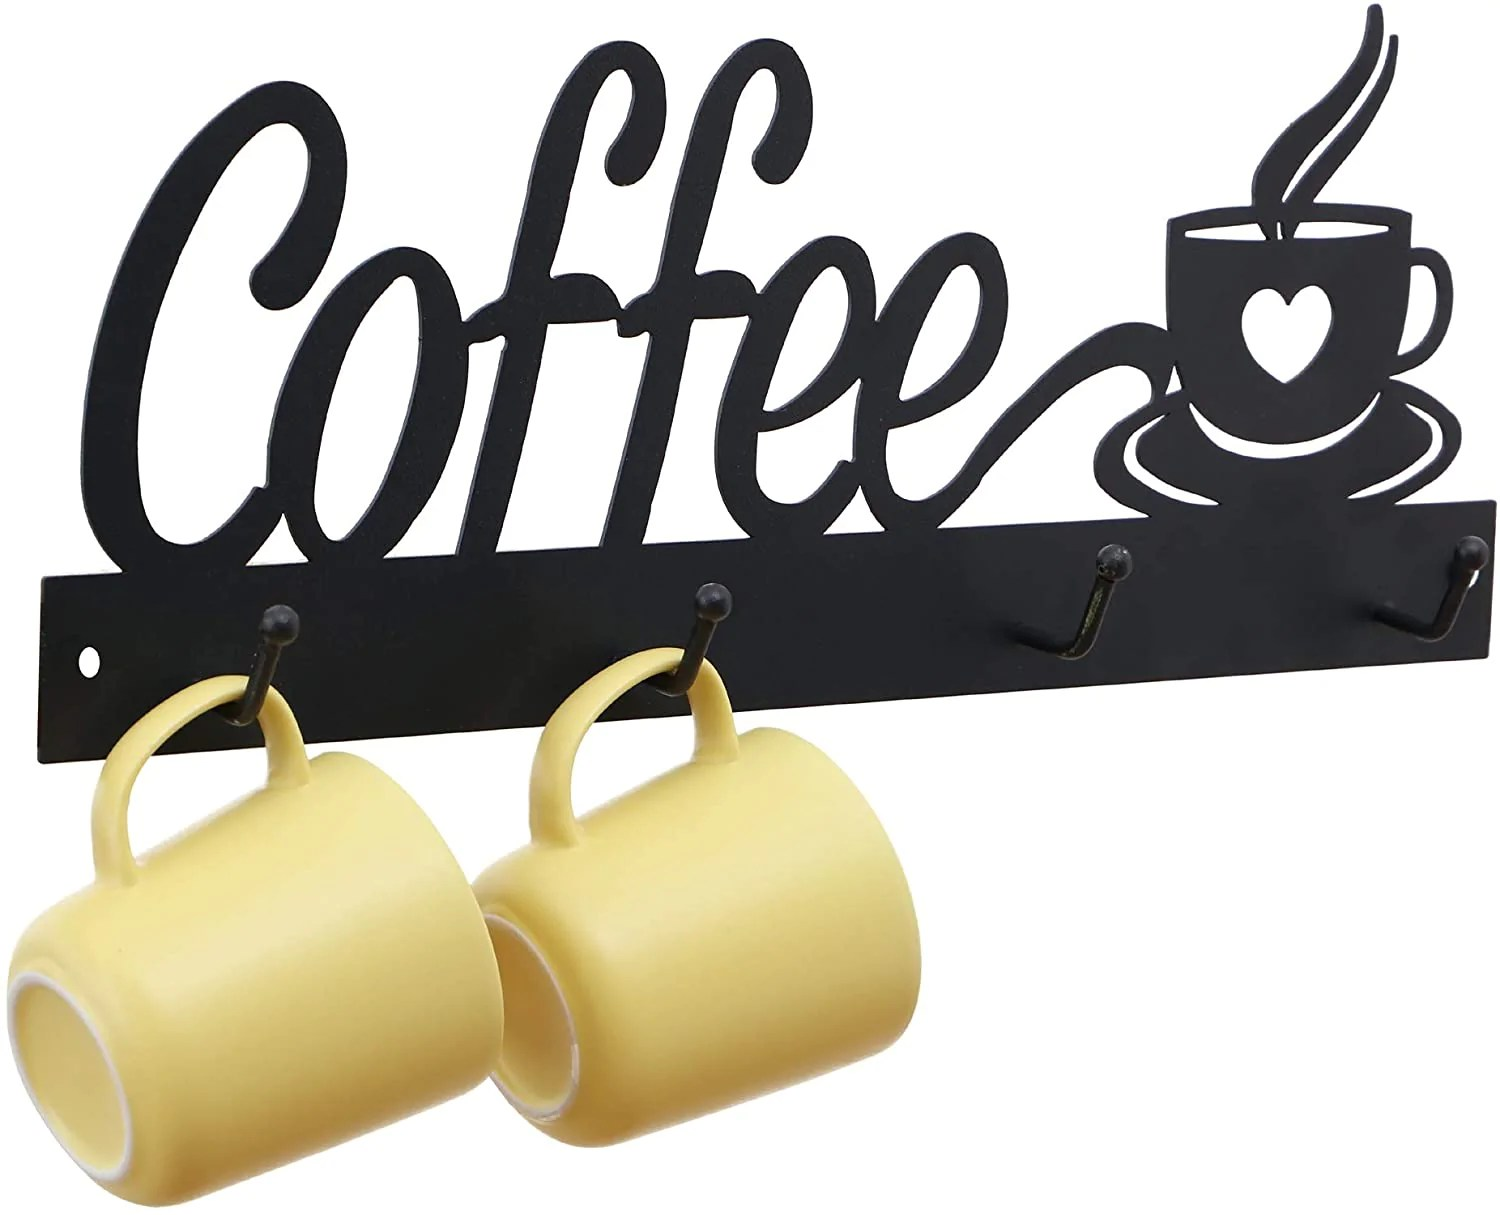 annyhome metal coffee mug holder wall mounted hanging coffee cup racks for wall with 4 hooks coffee signs for coffee bar kitchen or cafe decor